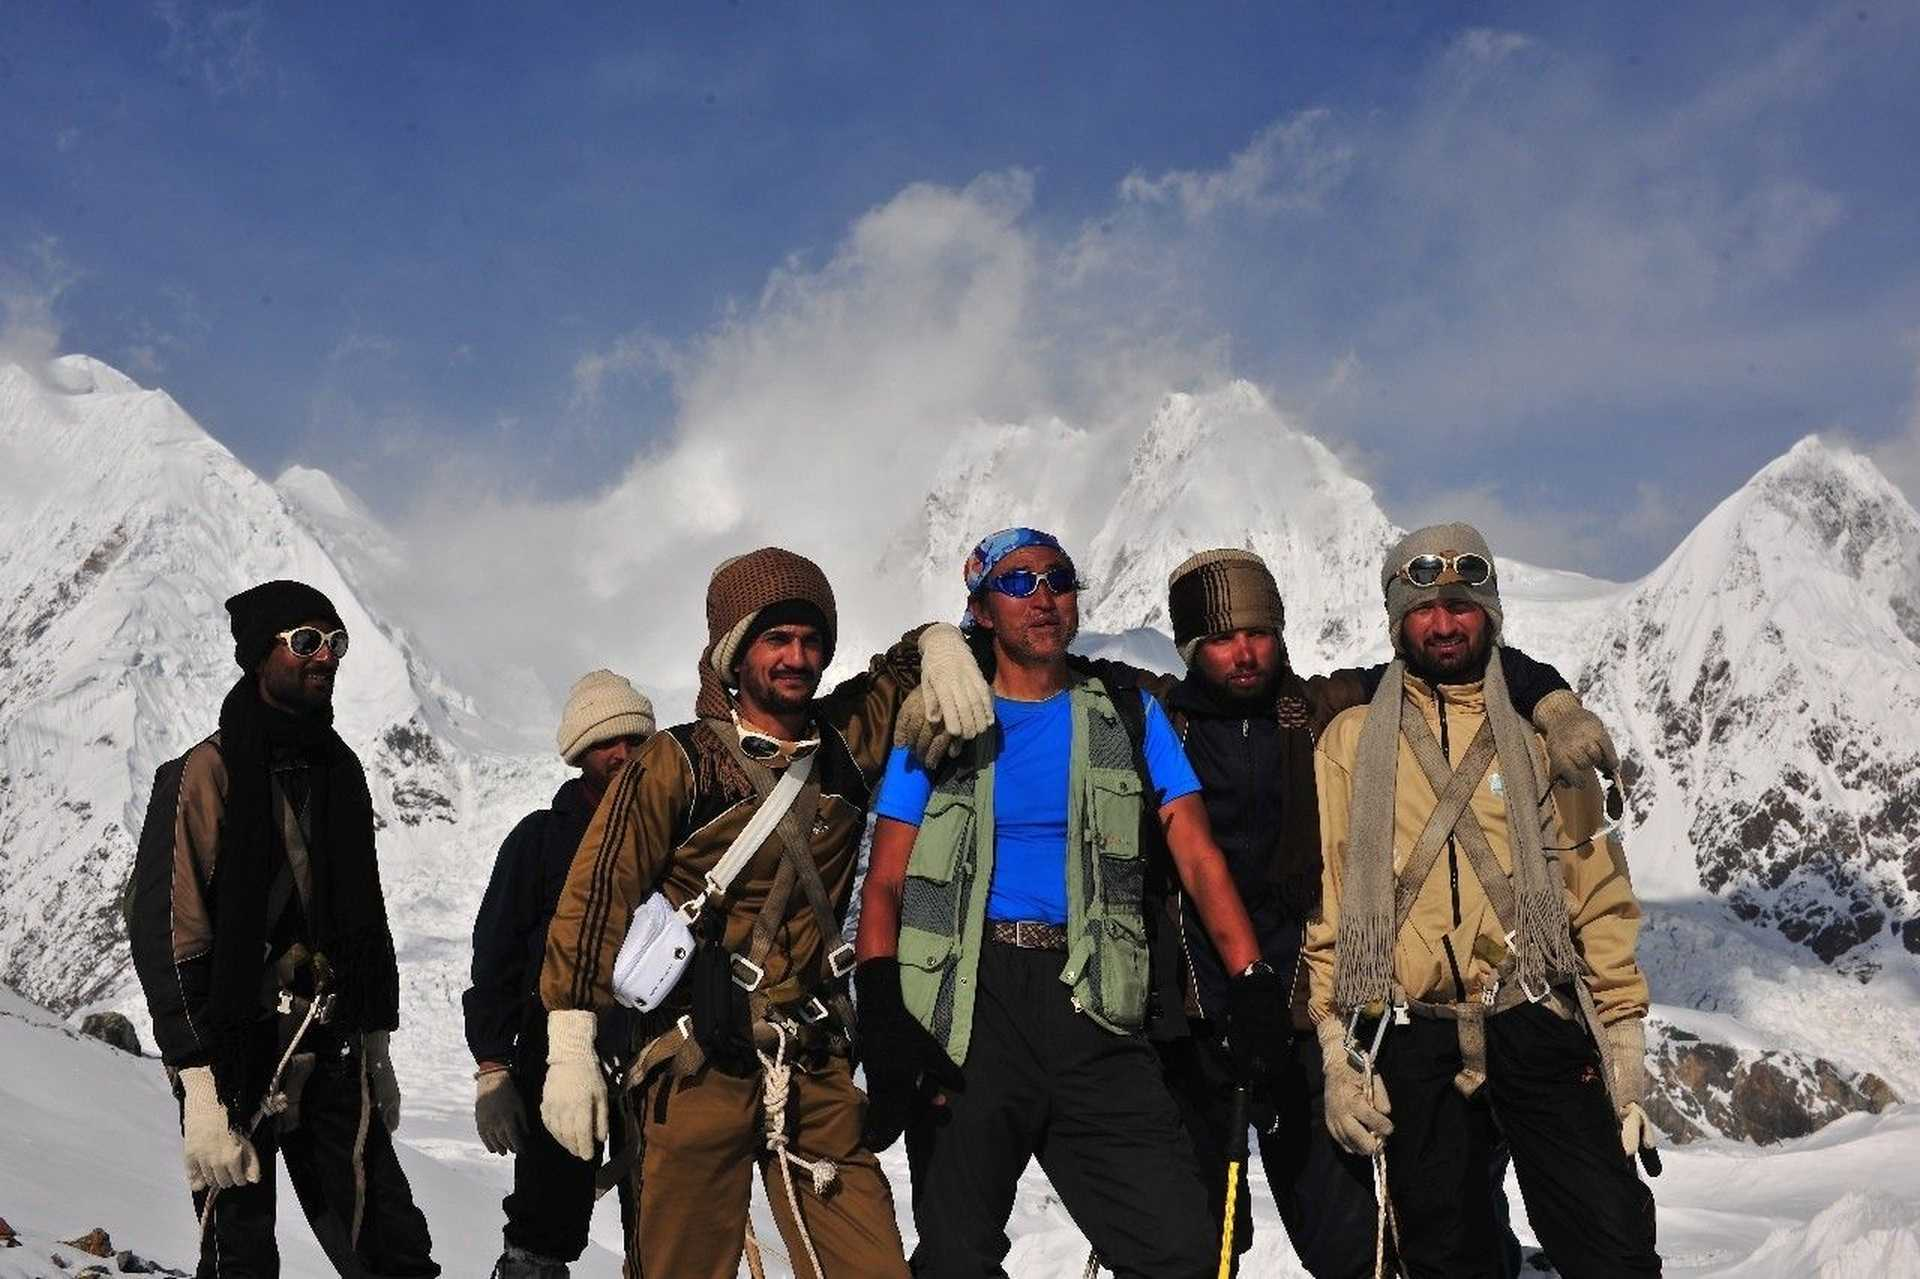 Li Guoping: Mountain Photographer    He moved not only the Chinese, but also the moving Nepal and Pakistan